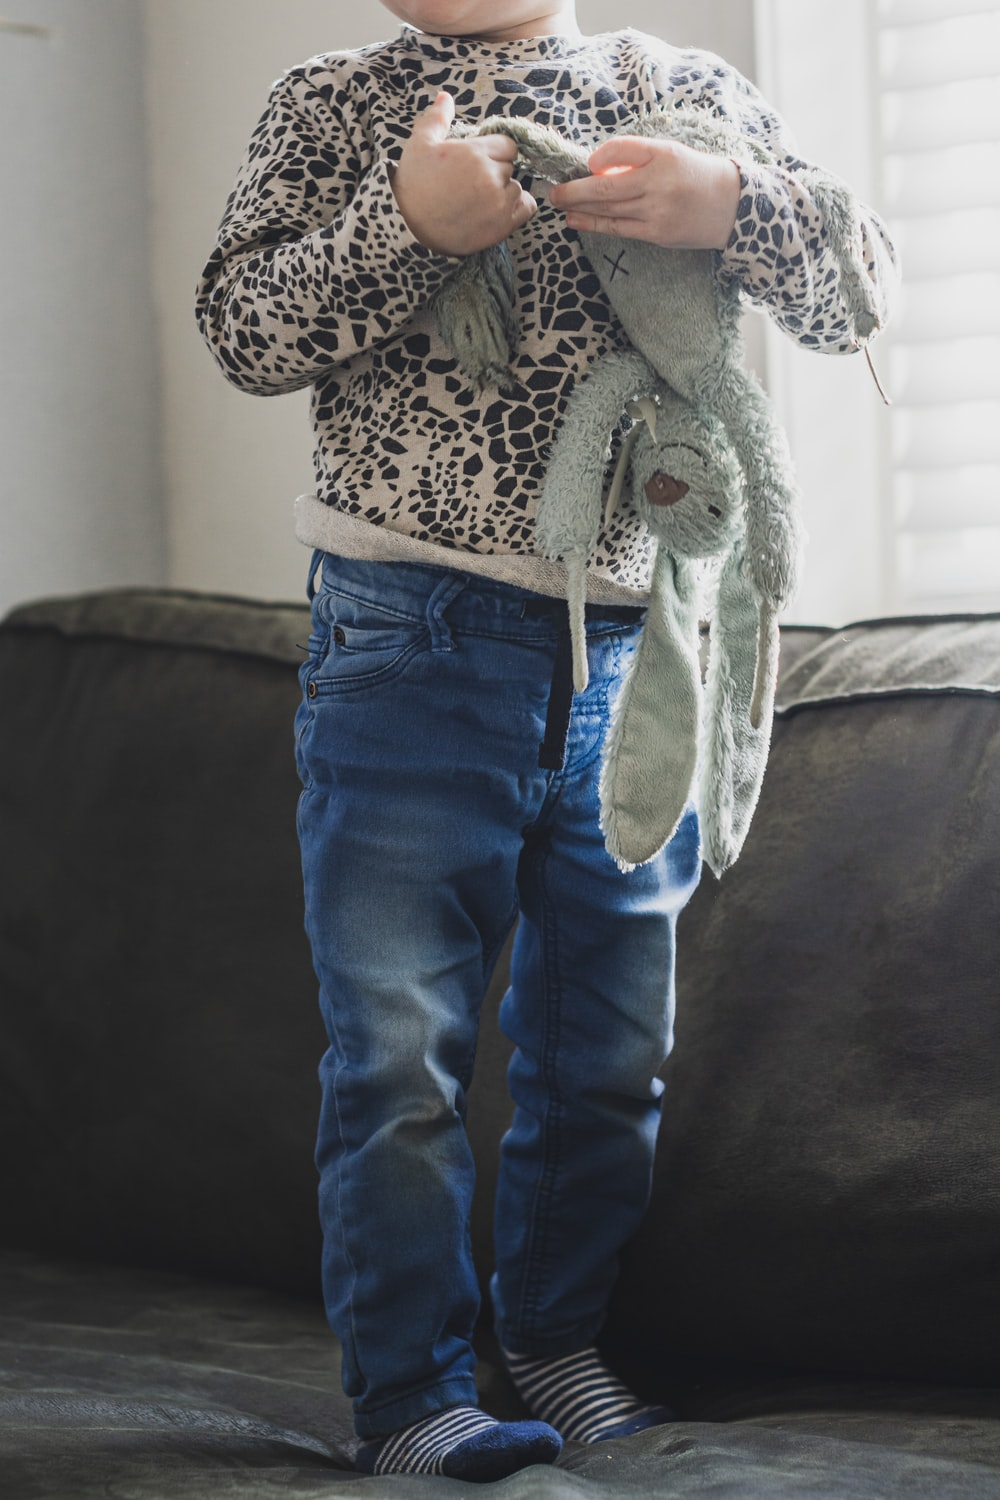 person in blue denim jeans and brown and white leopard print coat standing on black textile